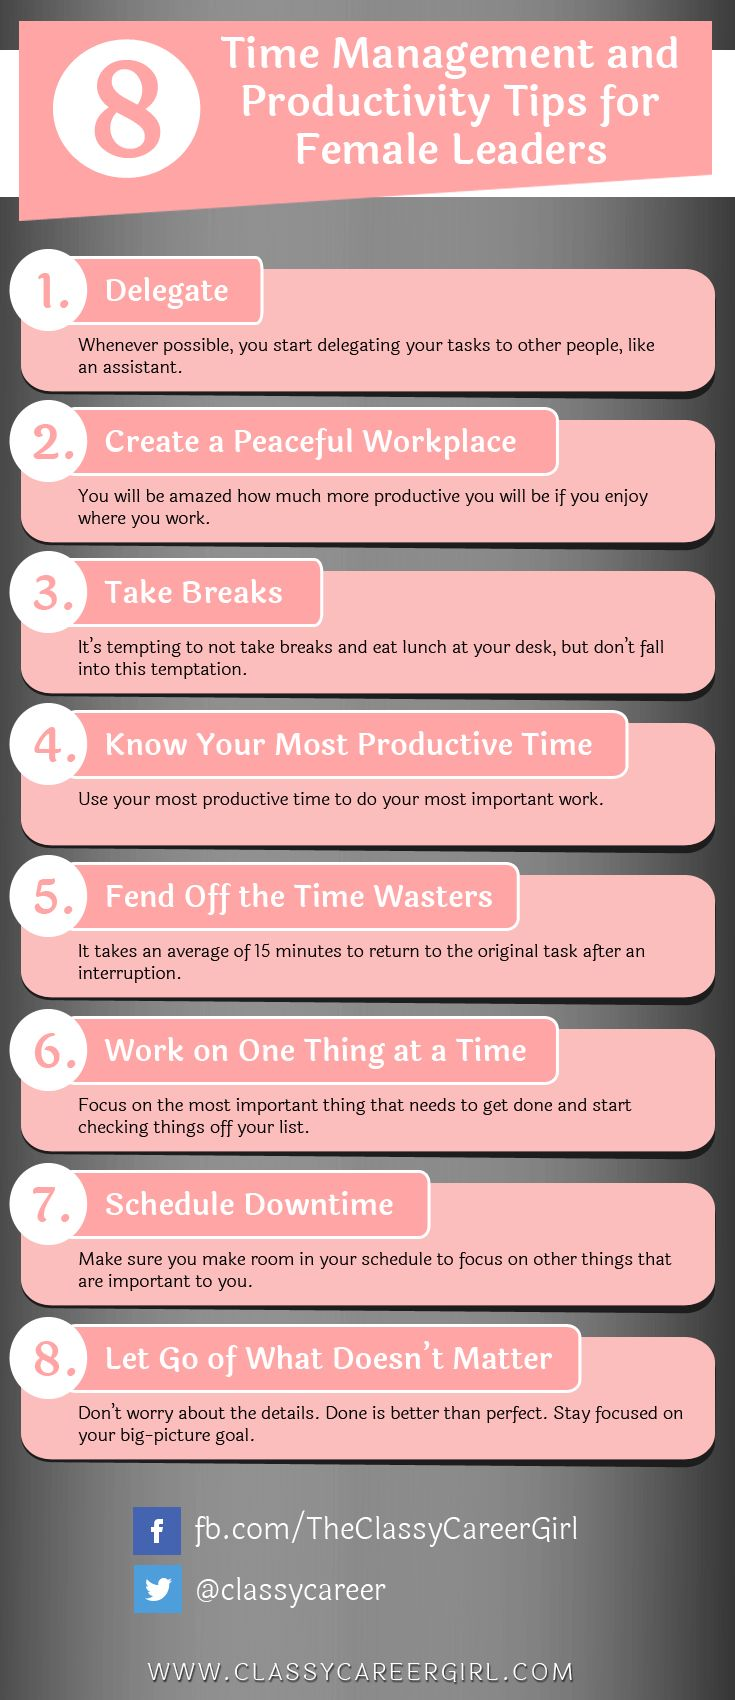 8 Time Management and Productivity Tips for Female Leaders list